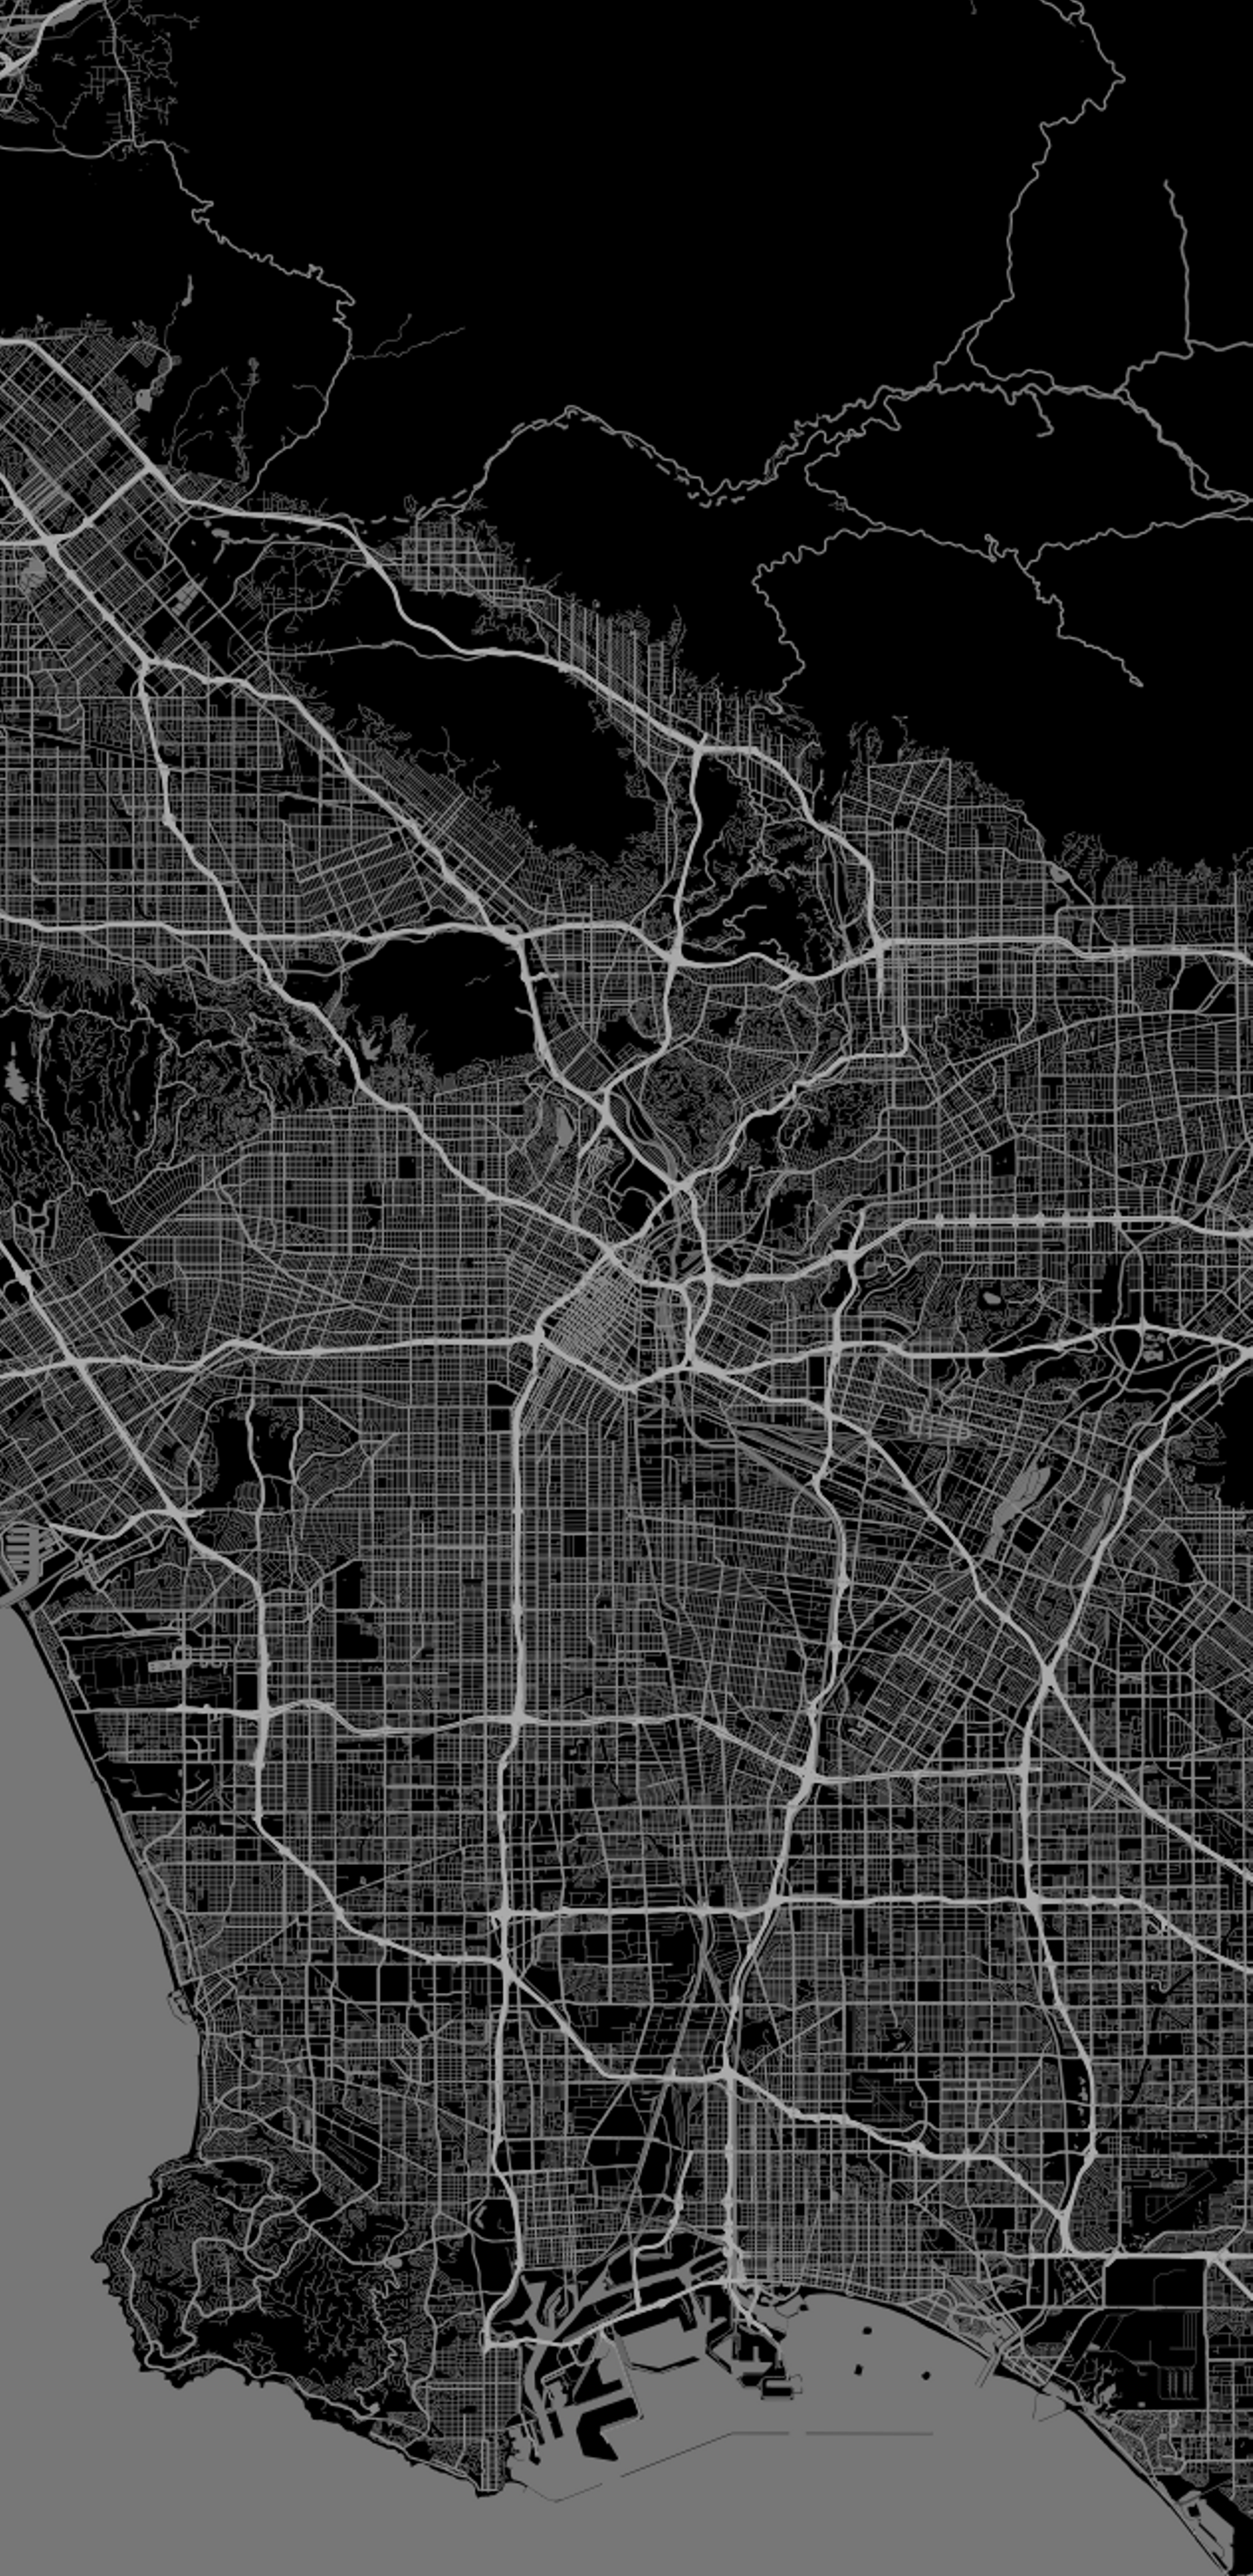 Los Angeles Map Cell Phone Wallpaper Los Angeles Map Wall Paper Phone Los Angeles Iphone Wallpaper